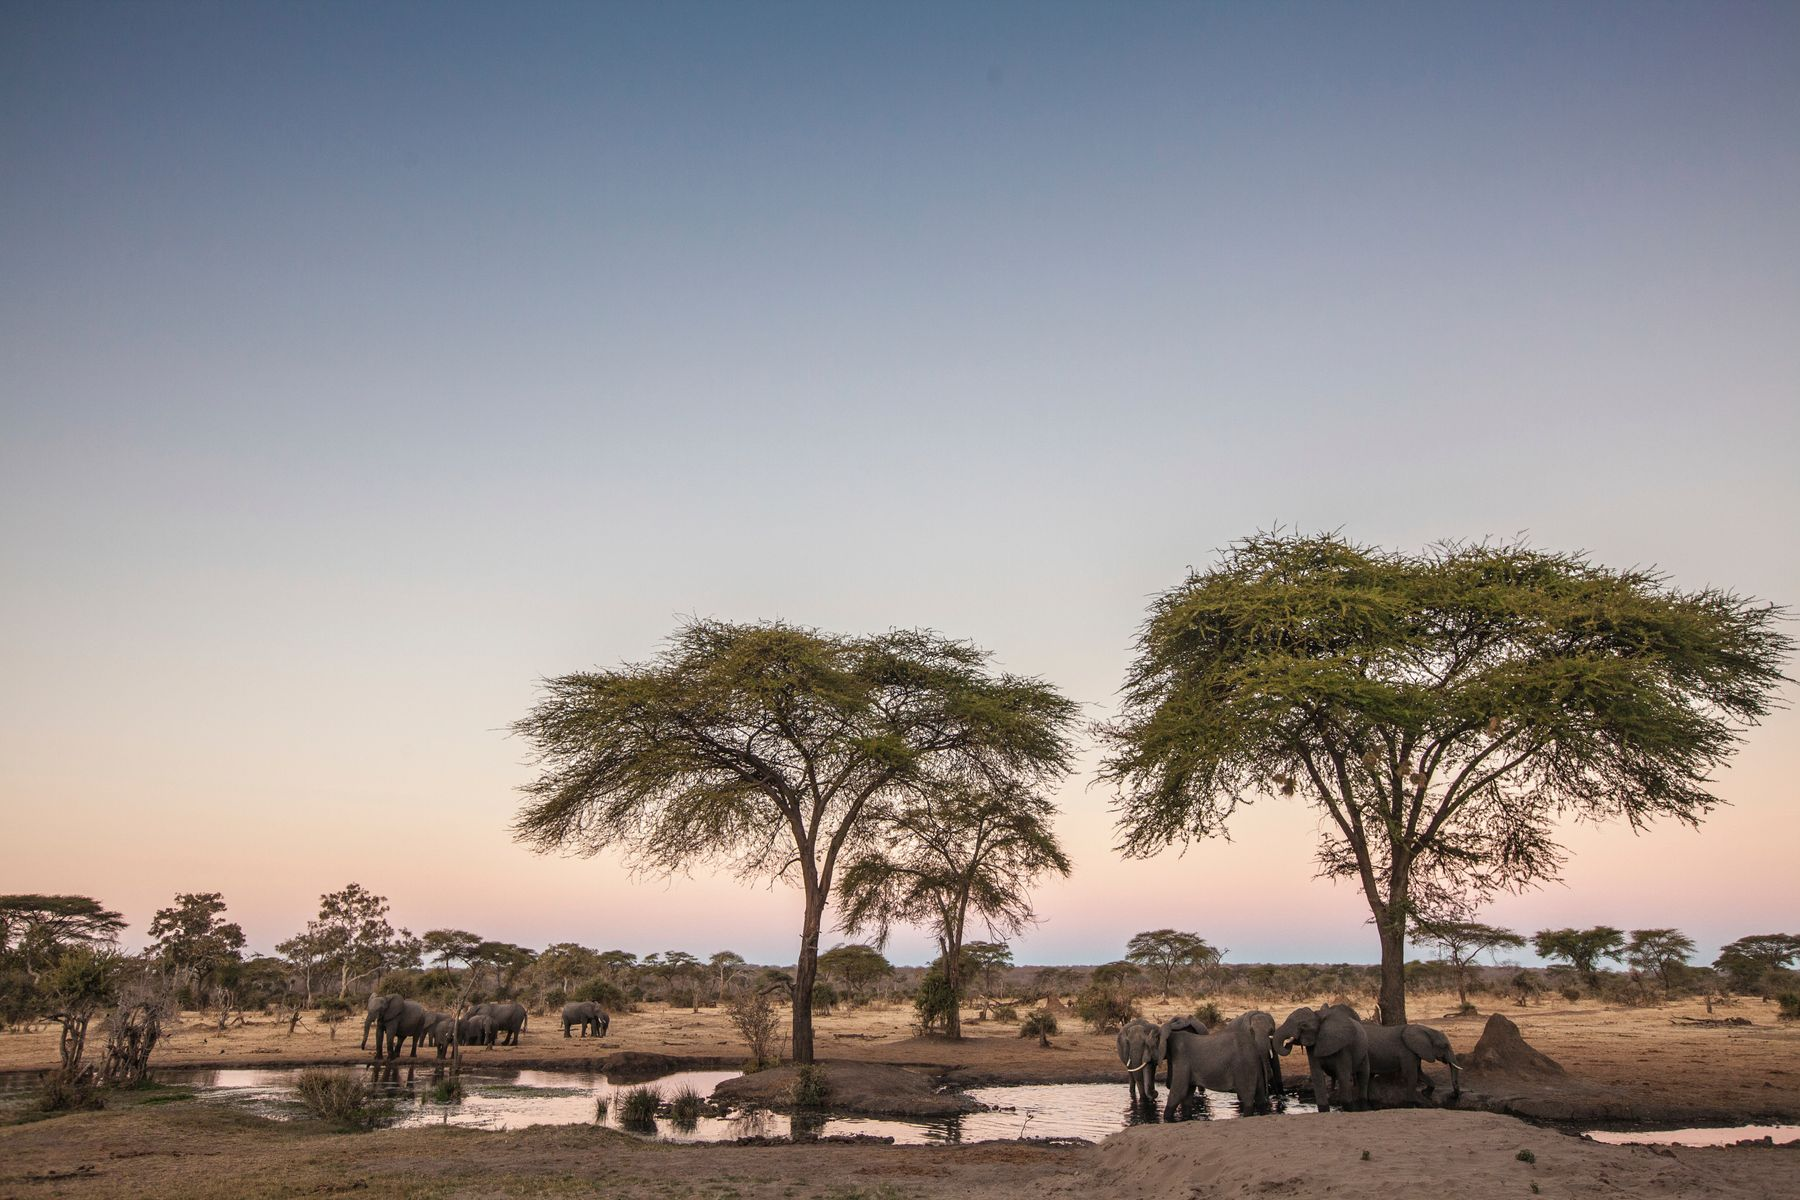 elephants bathing in the pond together in Kenya, a popular spot for travel in February. Always make sure to be a responsible traveller to see these gentle giants in their natural habitat